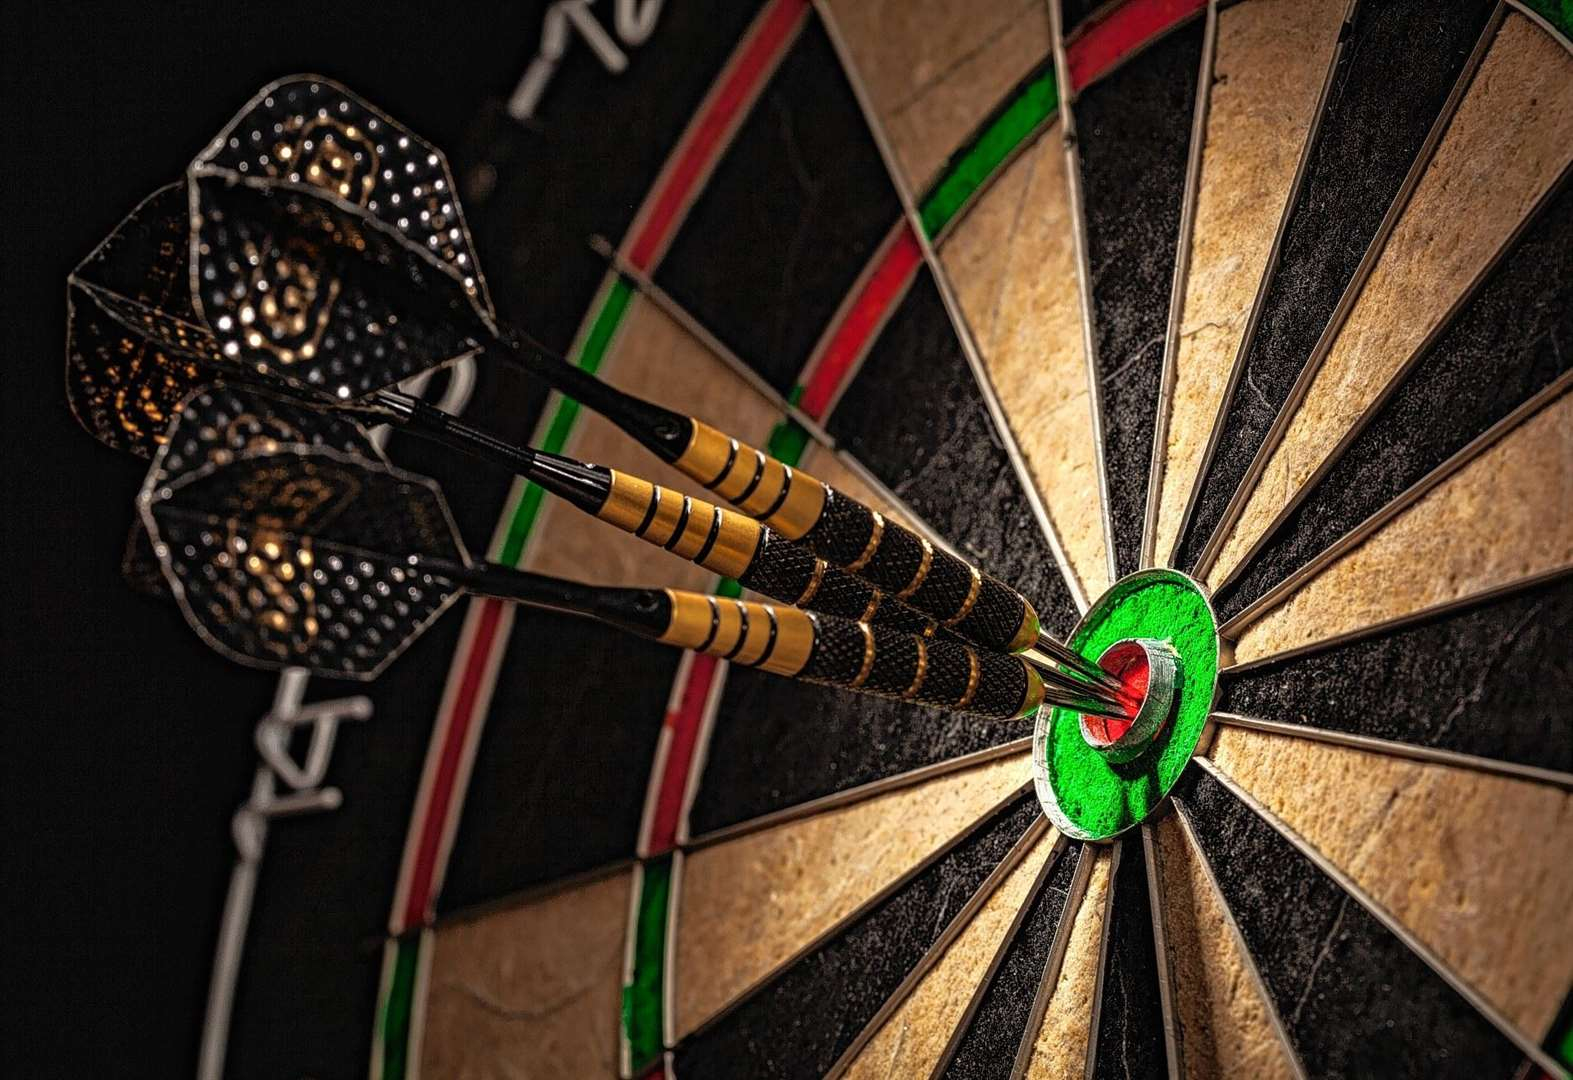 Donald and Davidson hit 14-dart pairs game as Wick league resumes